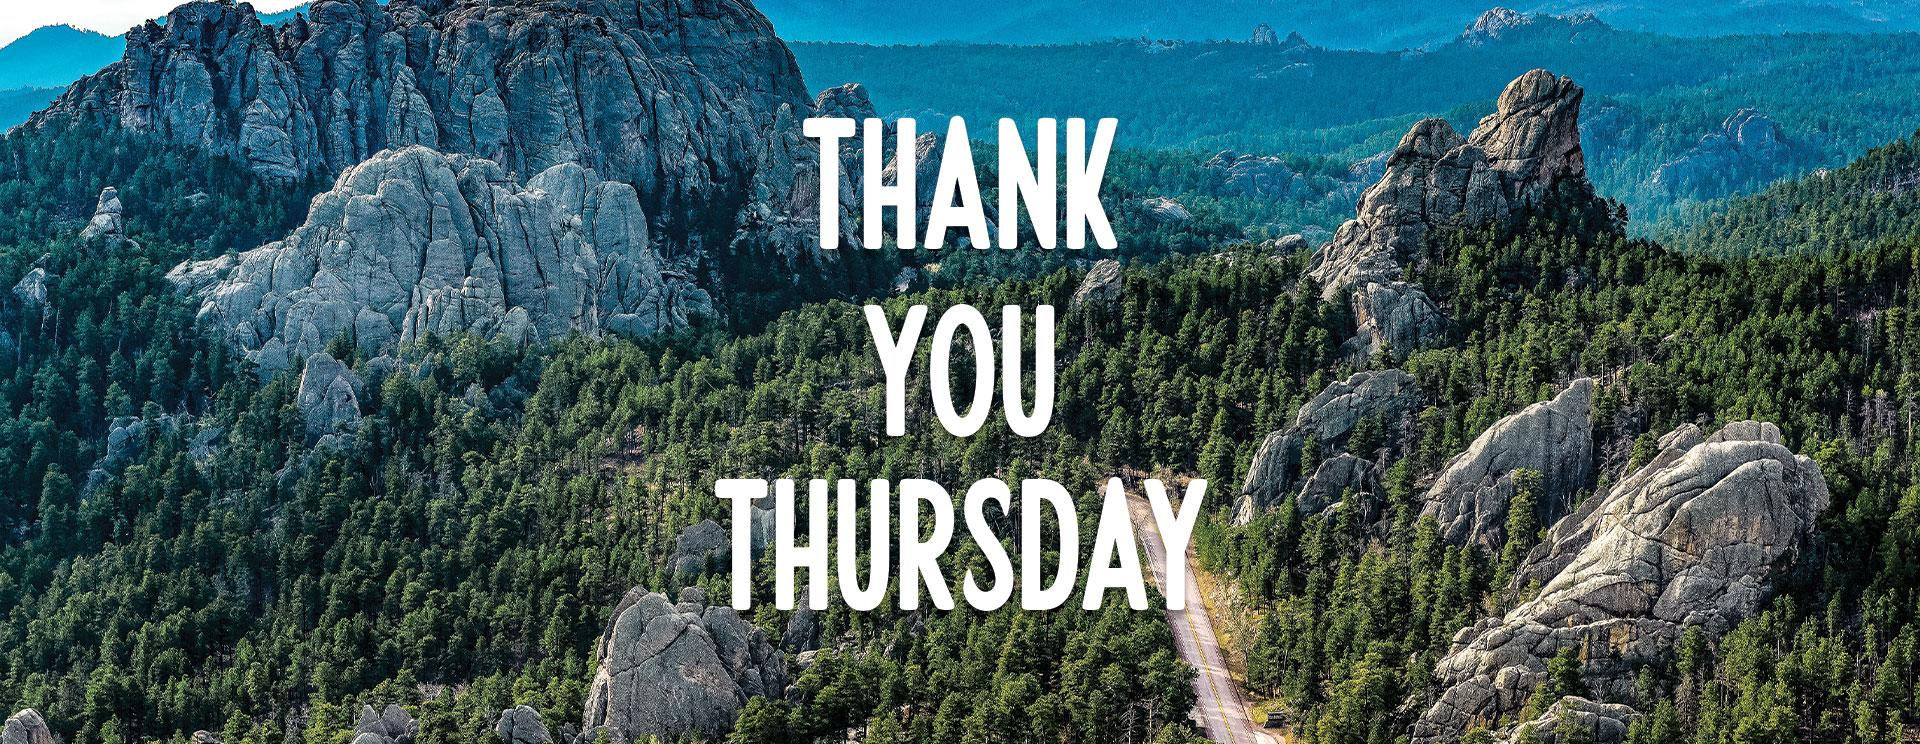 Thank You Thursday ∙ Renewing Members ∙ Oct. 21, 2021